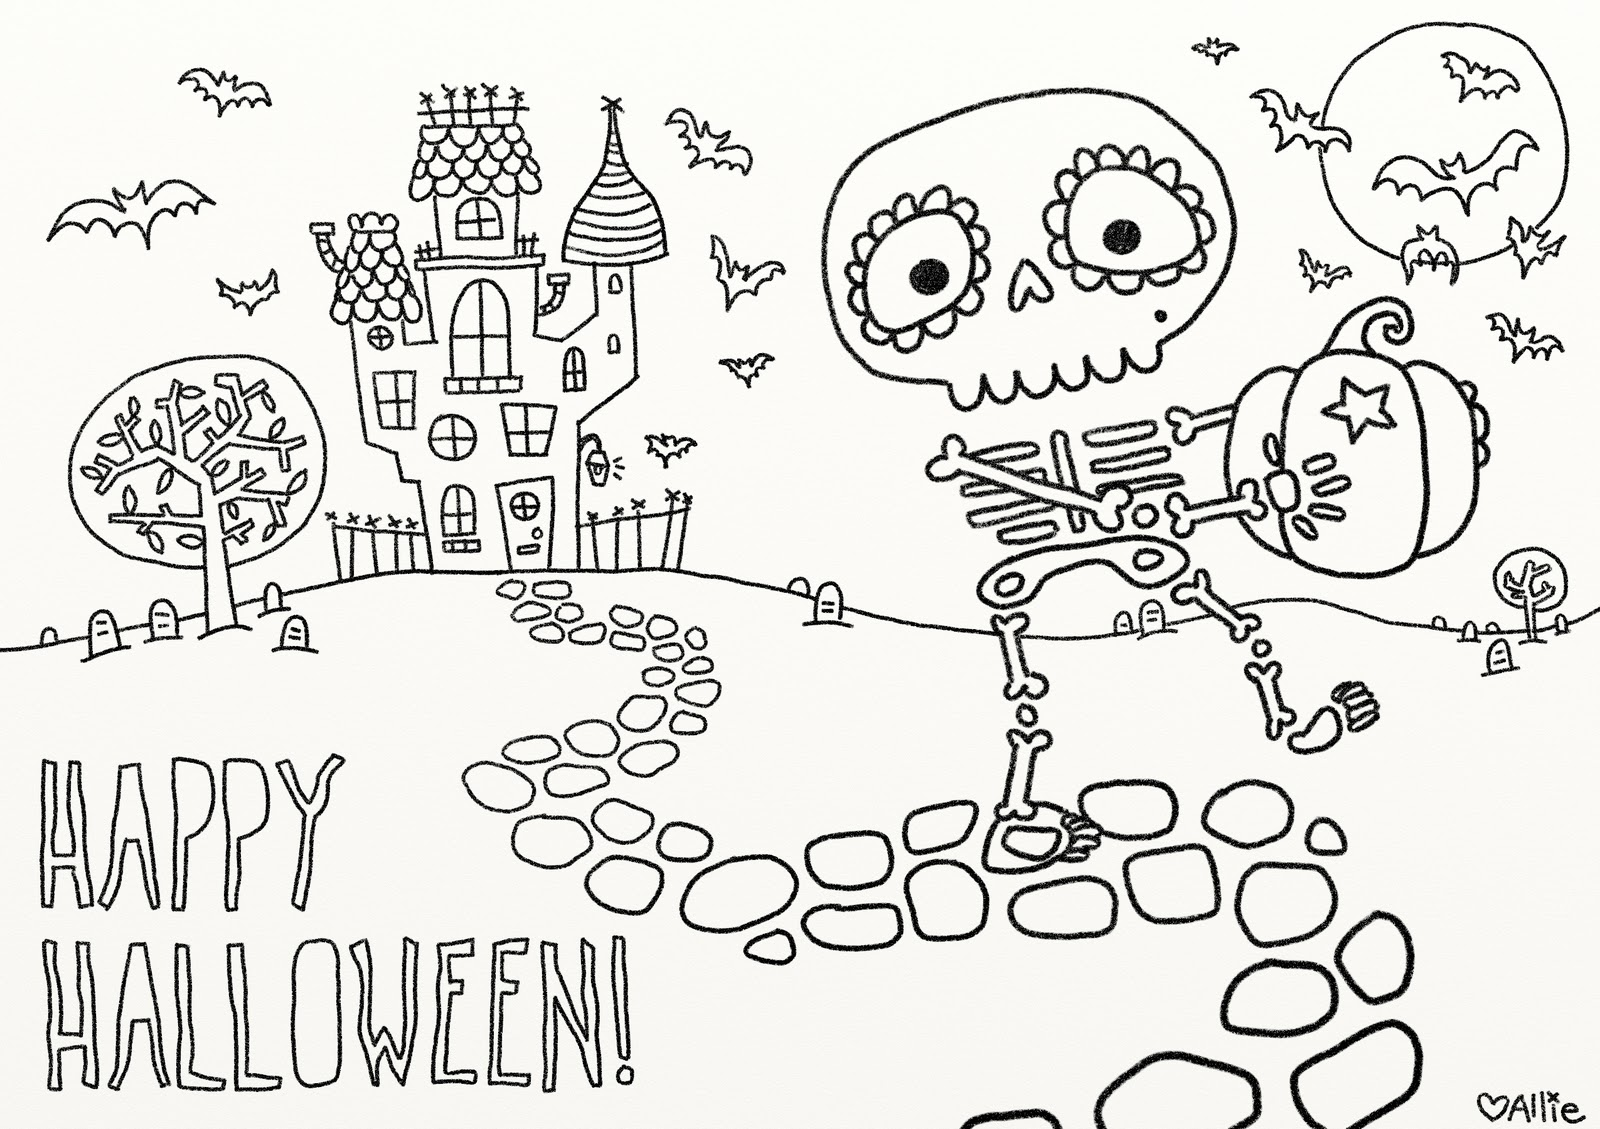 9 fun free printable halloween coloring pages to help keep little fingers out of the candy